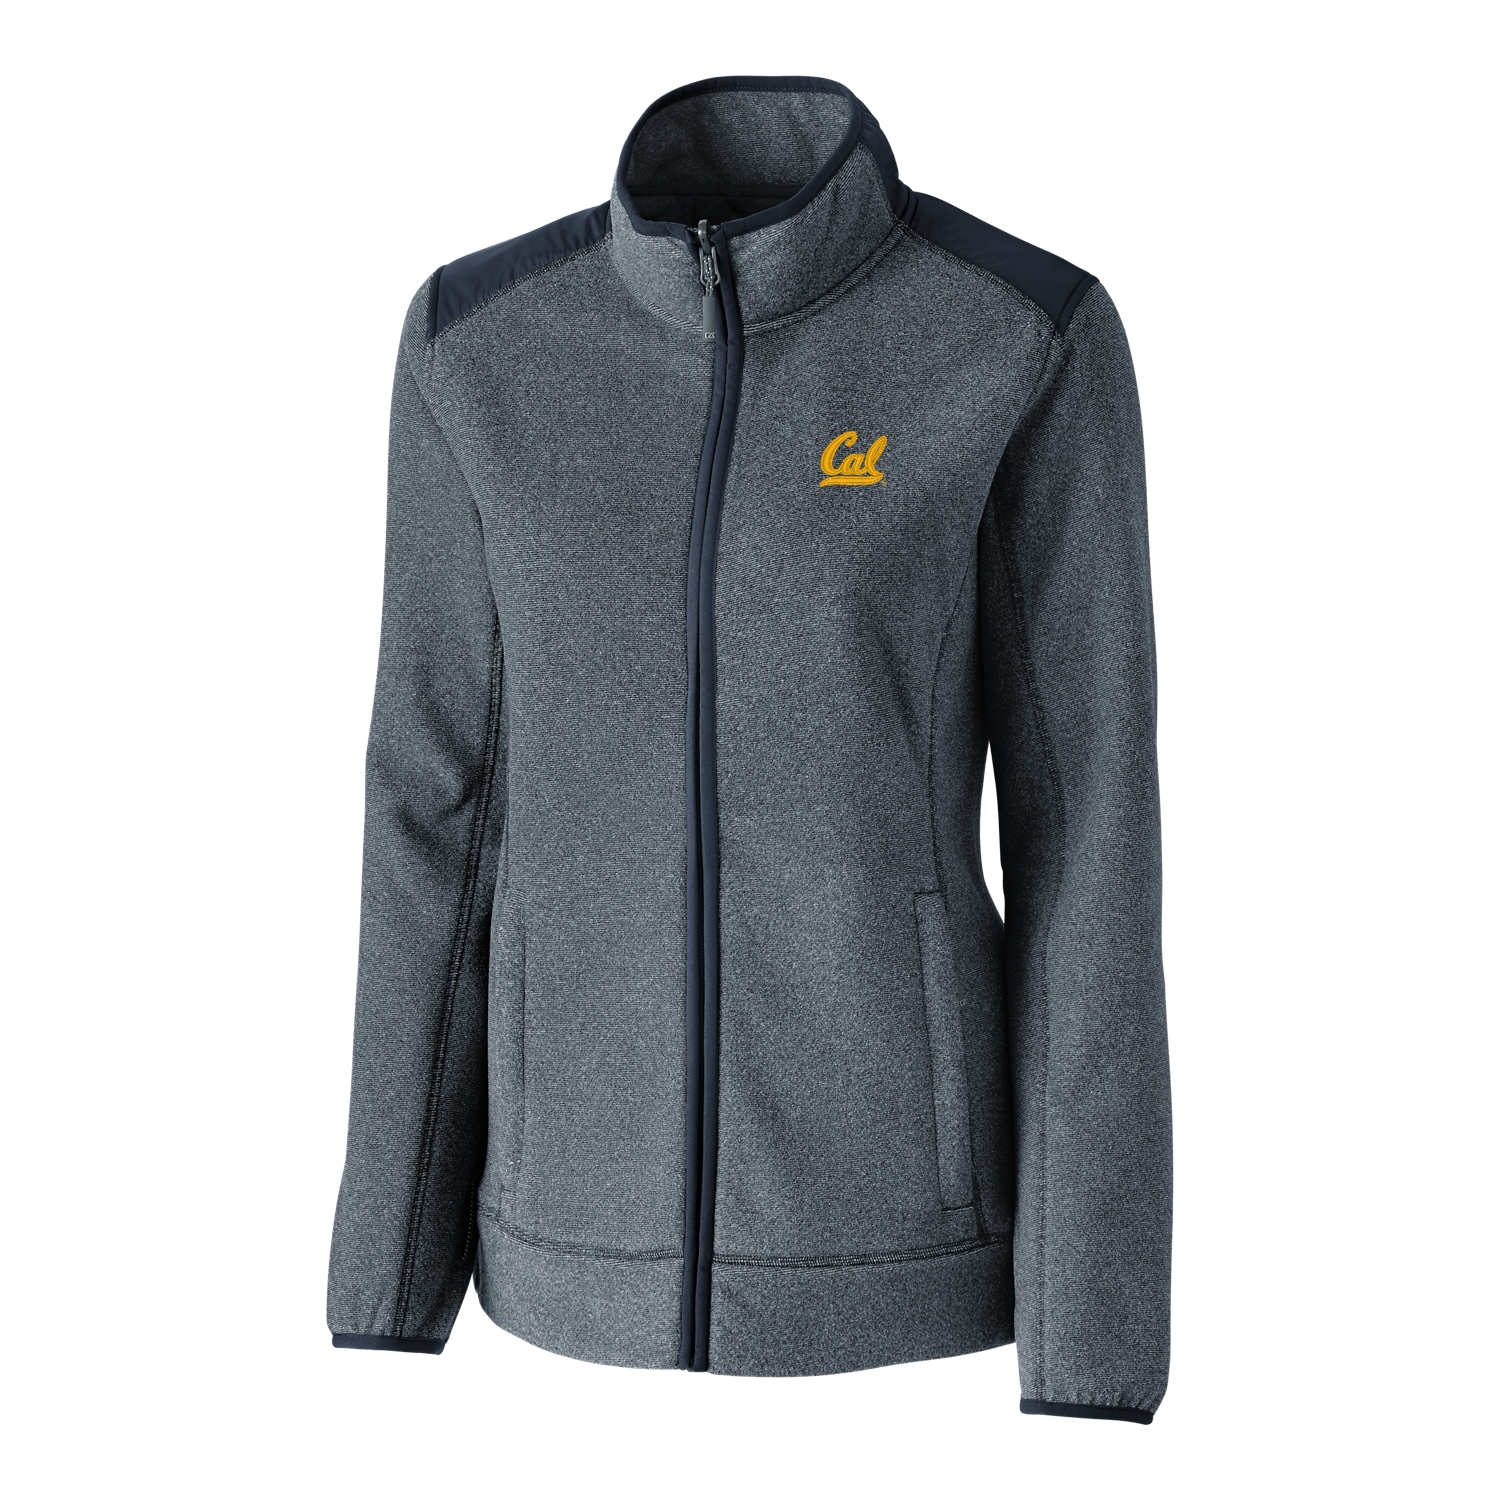 University of California Berkeley CB Weathertec Women's Cedar Park Full Zip